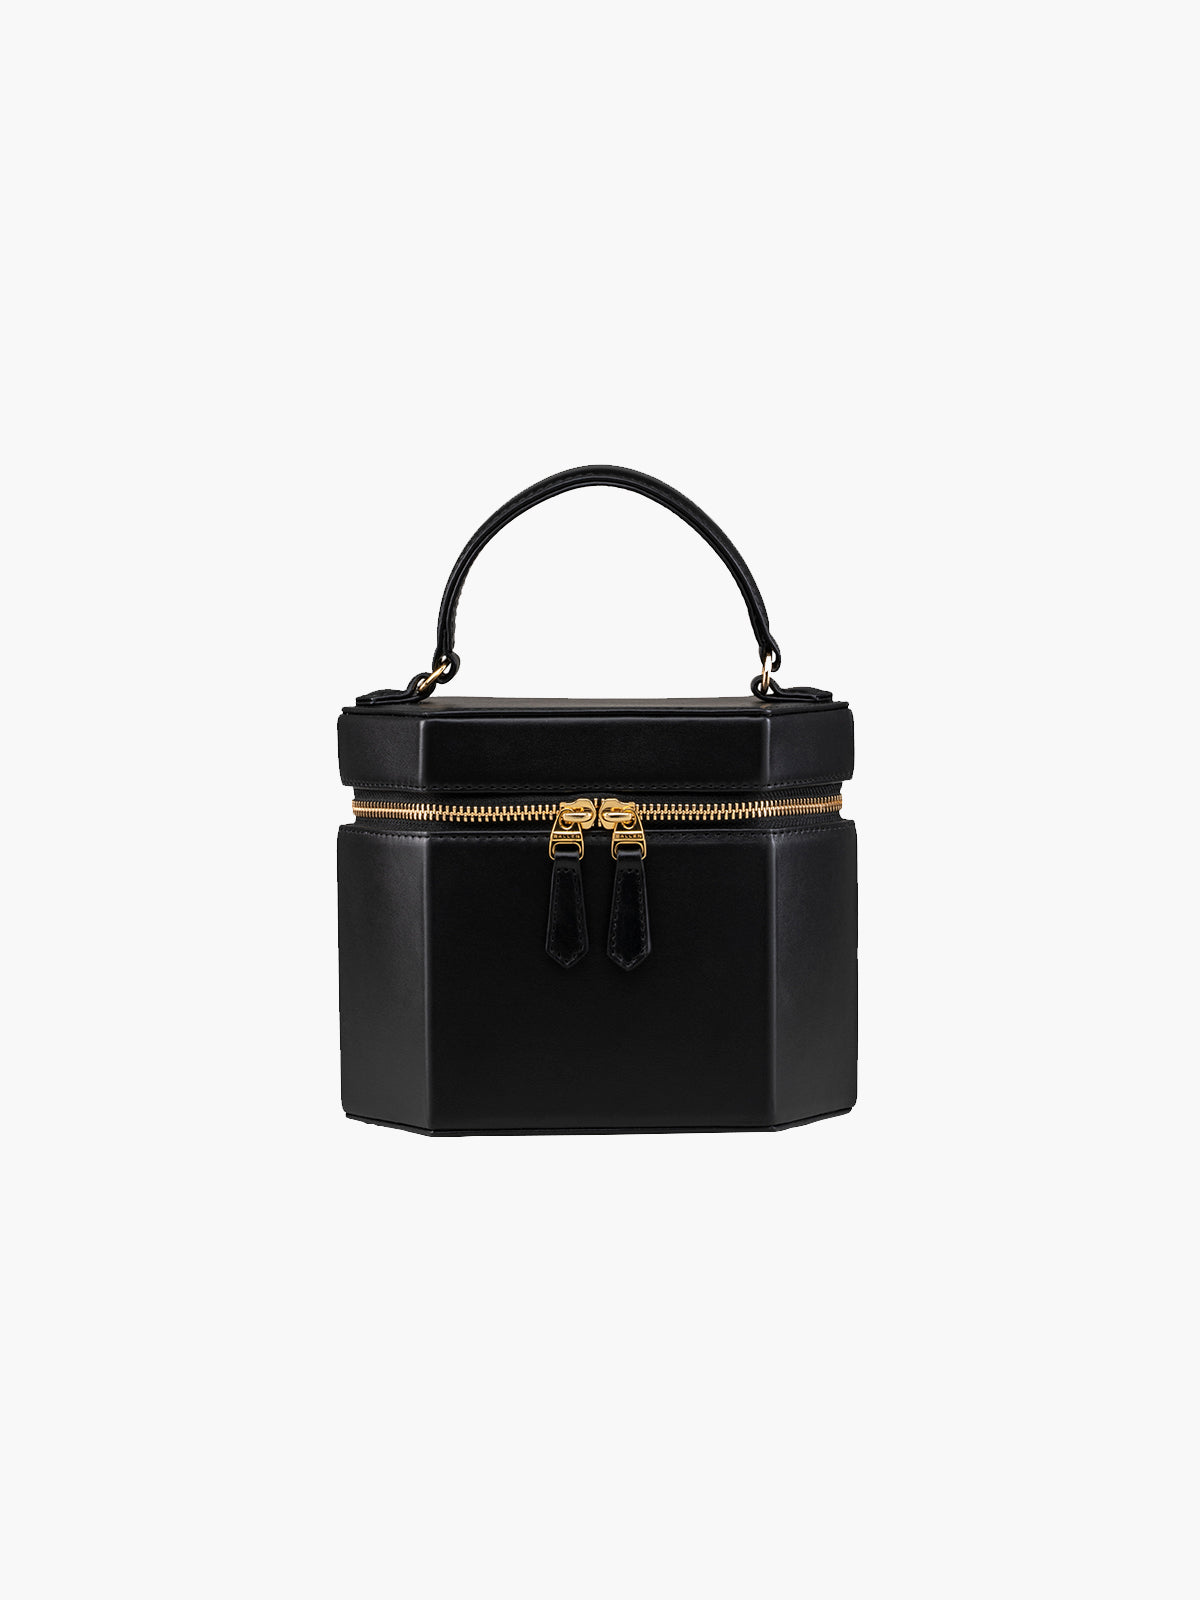 Xosme Bag | Napa Black